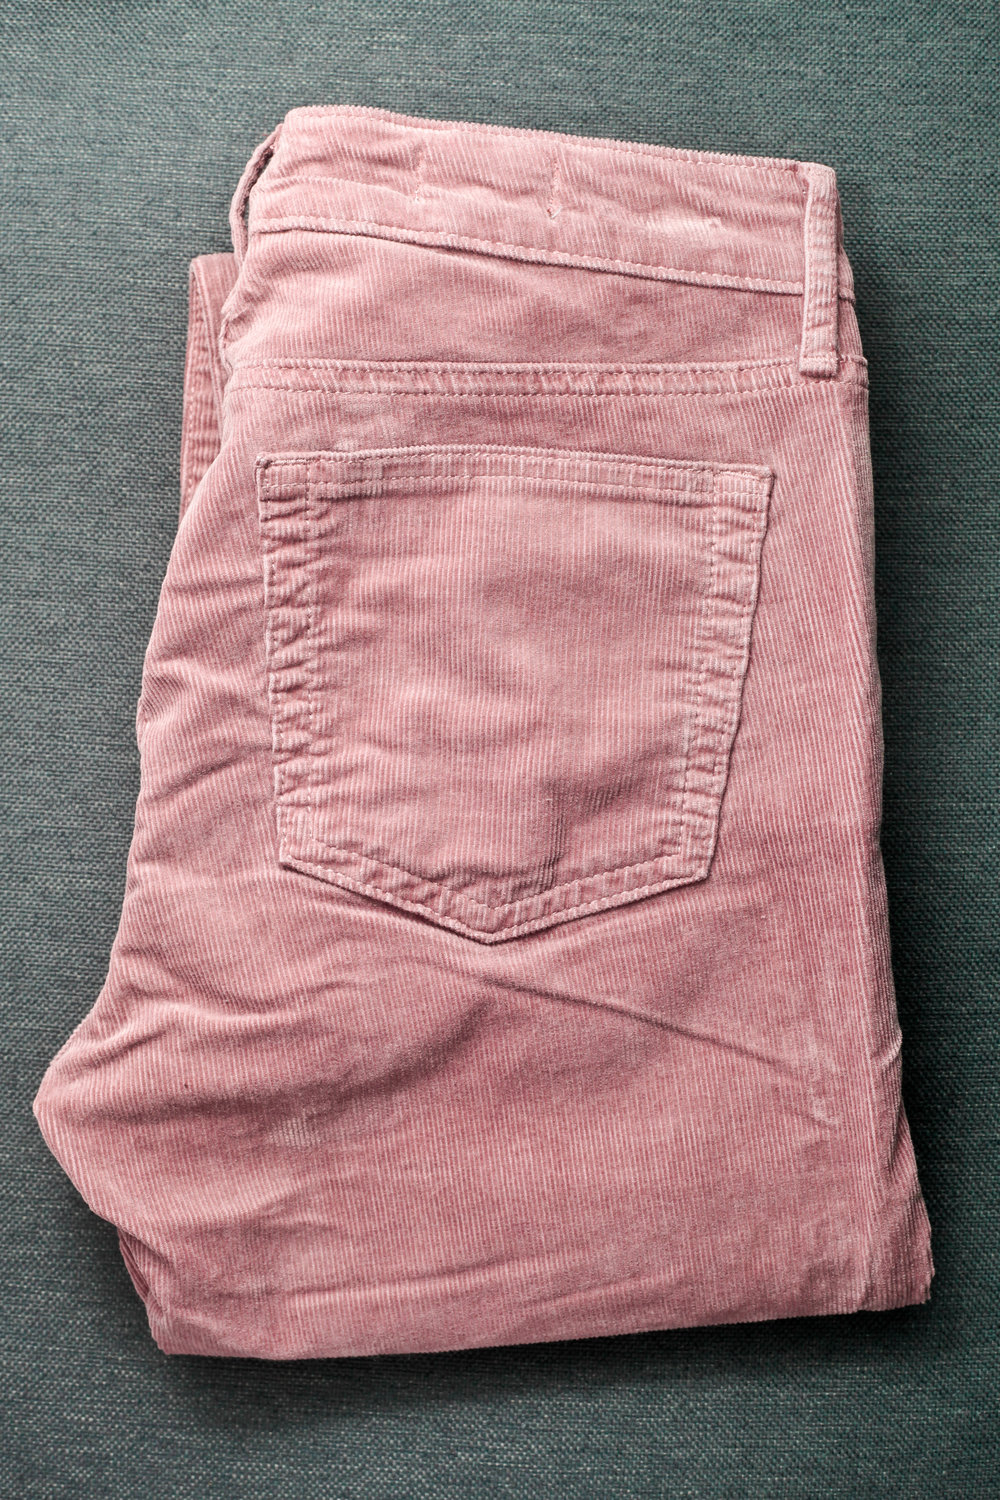 Example of corduroy pants